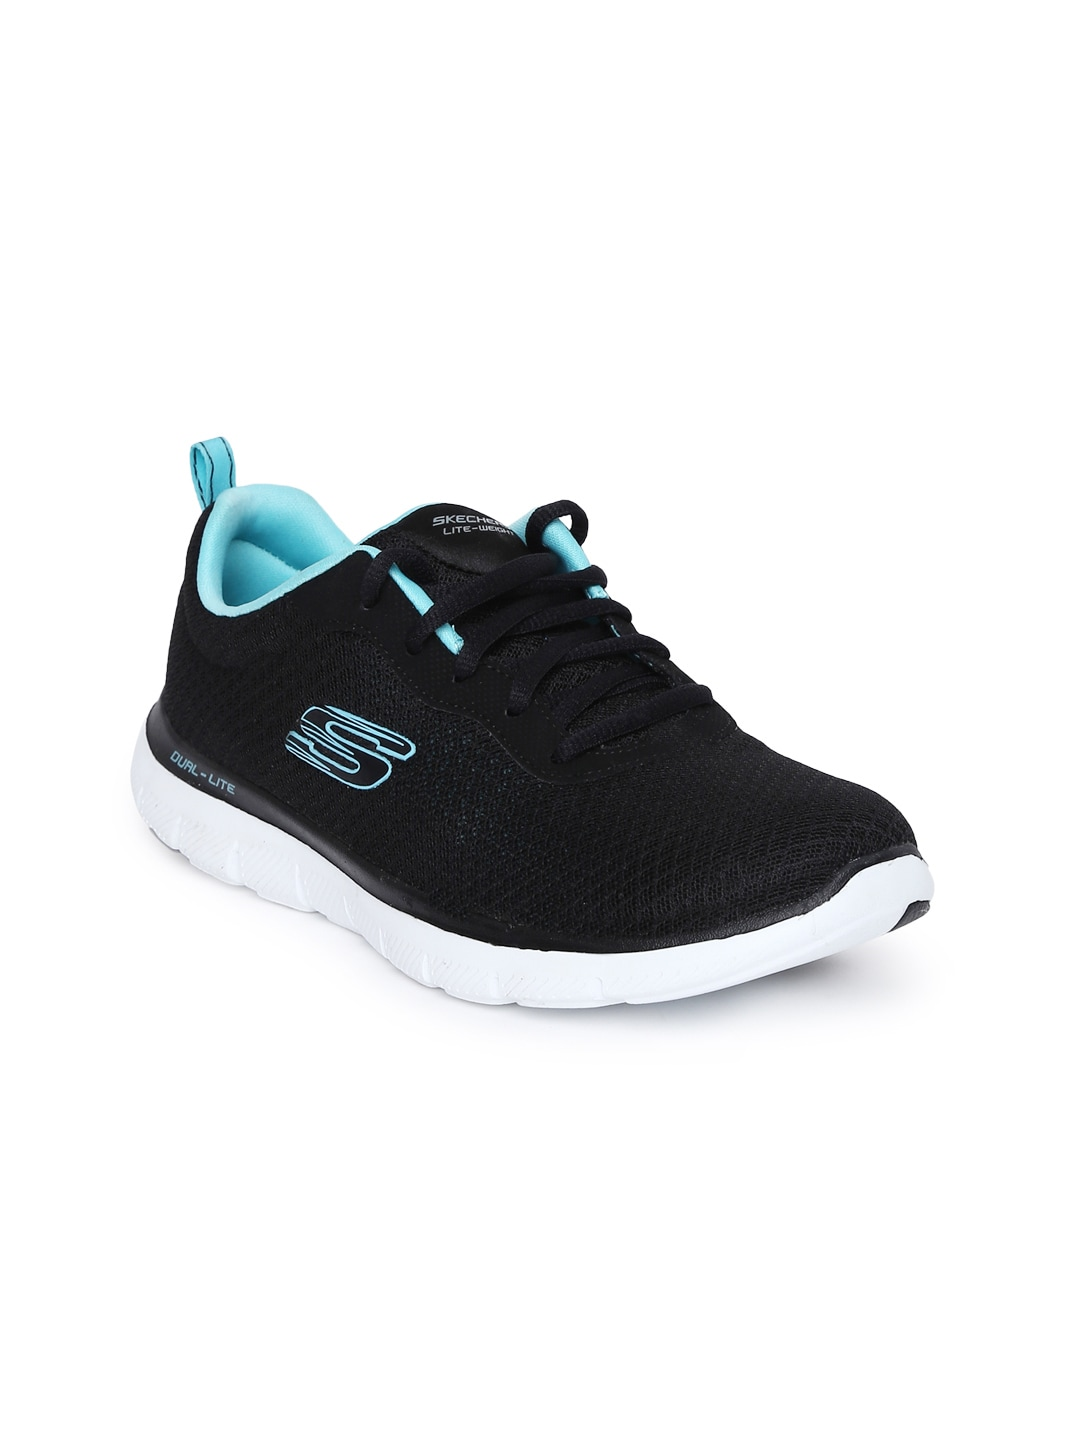 adadc333f824 Skechers - Buy Skechers Footwear Online at Best Prices